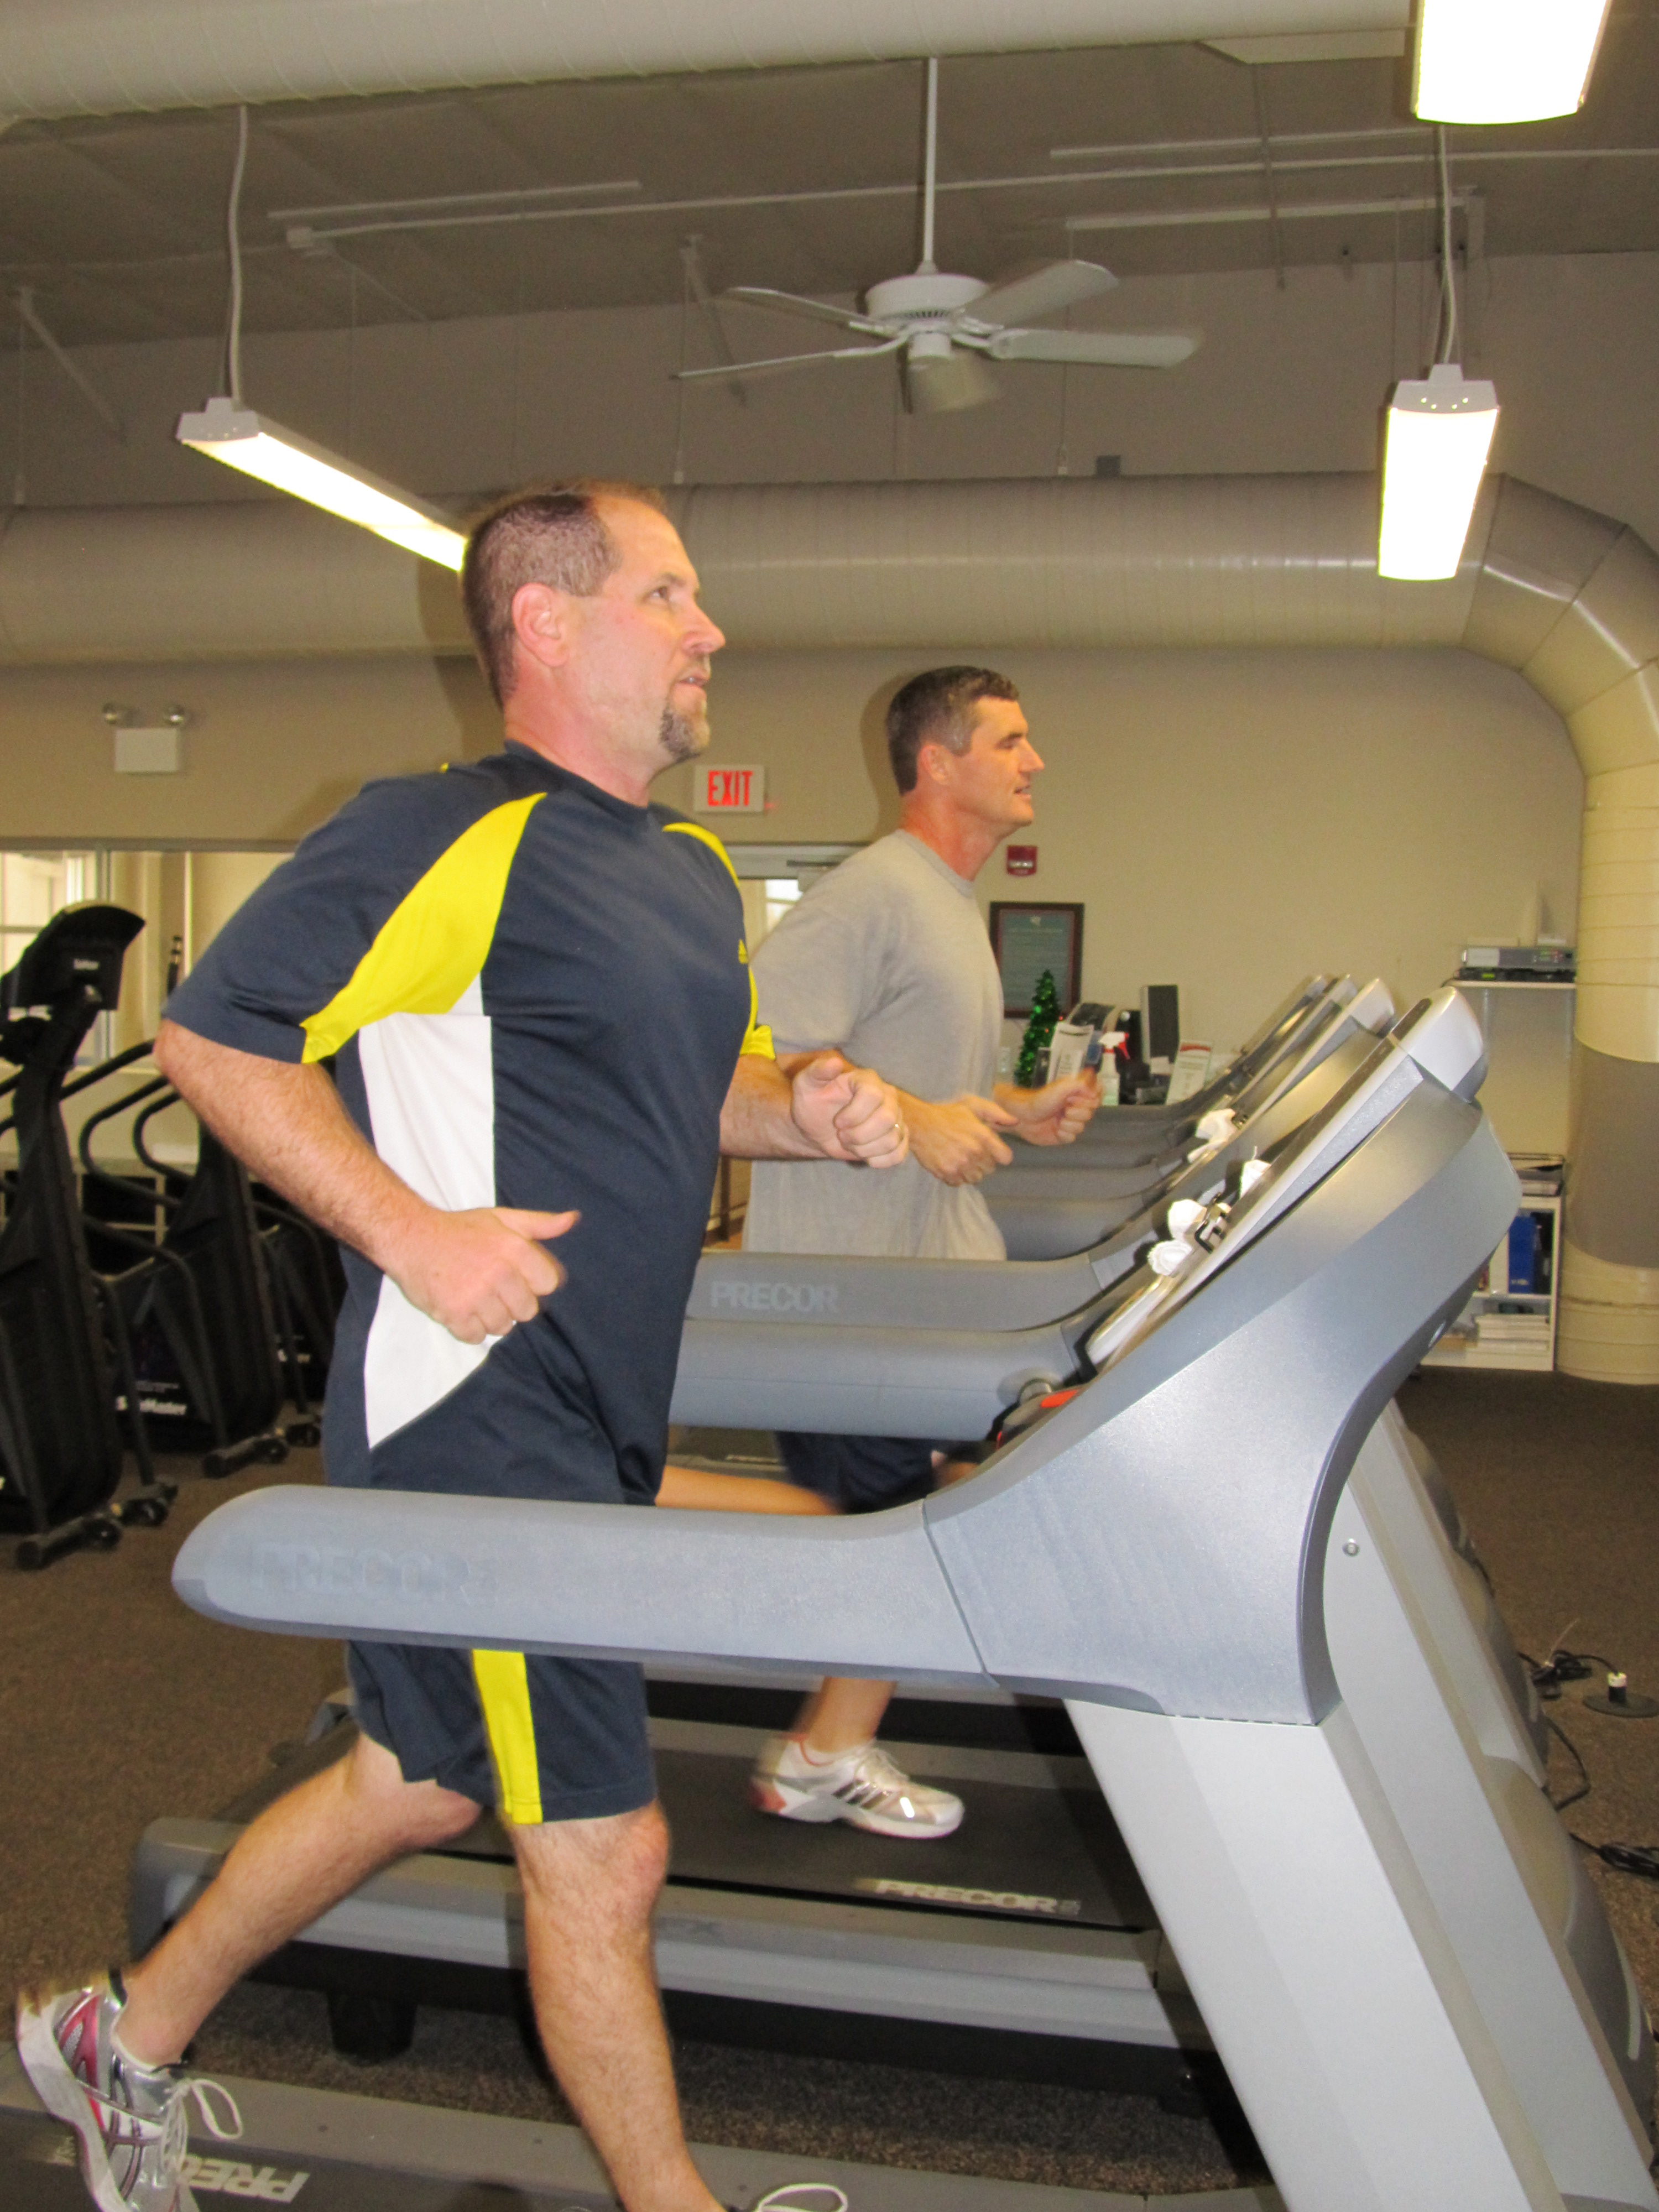 Layne and Wes on treadmills